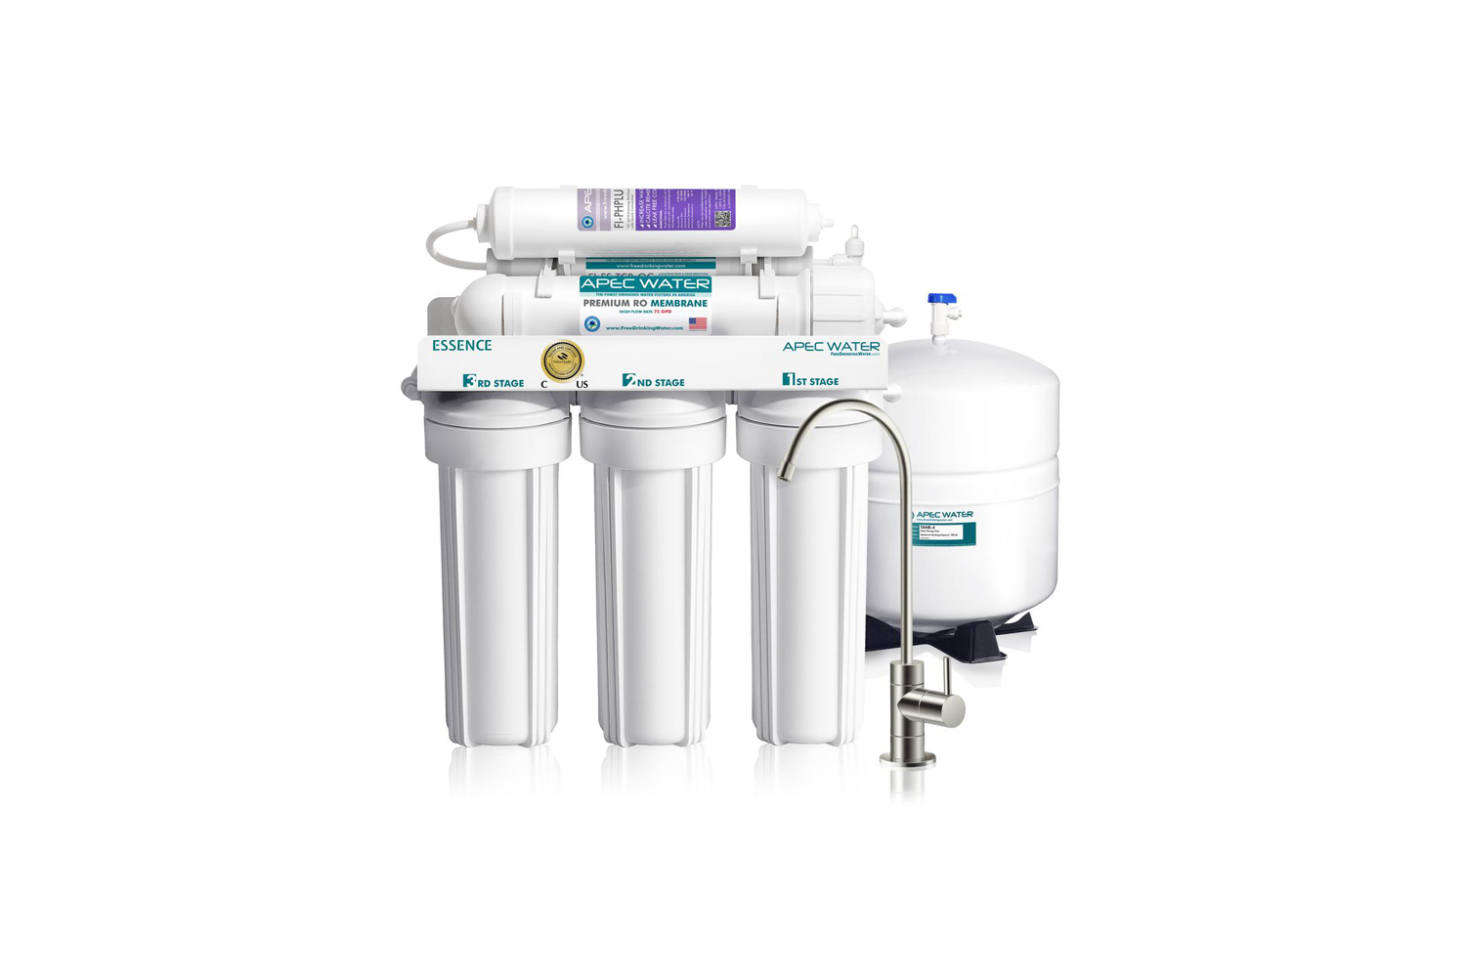 The APEC Water Systems Essence Under Sink Reverse Osmosis Drinking Water Filter System is an advanced 6-stage RO filtration system guaranteed to remove 99-percent of harmful contaminants and includes an additional re-mineralizing filter. The 6-stage system works via sediment pre-filter,